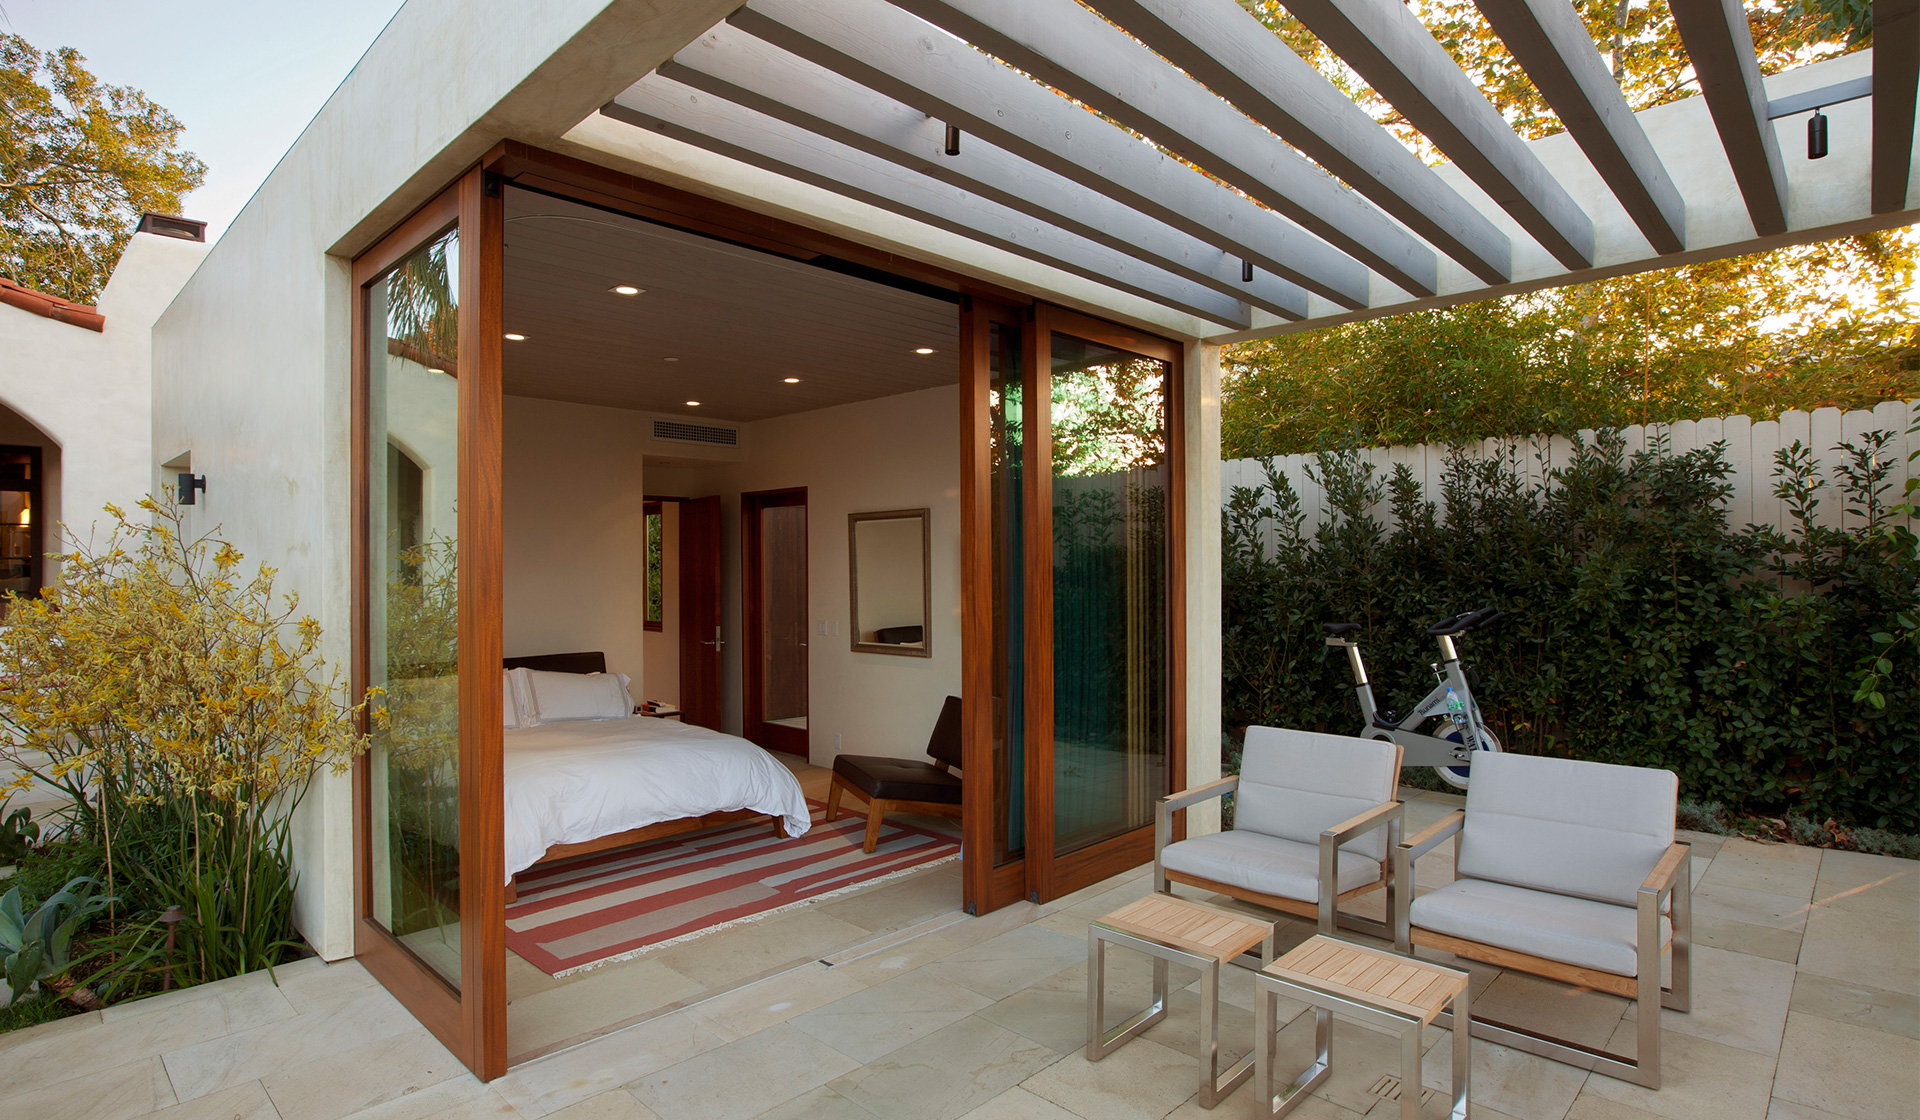 Adobe Home Design Modern Adobe House In California By Dutton Architects